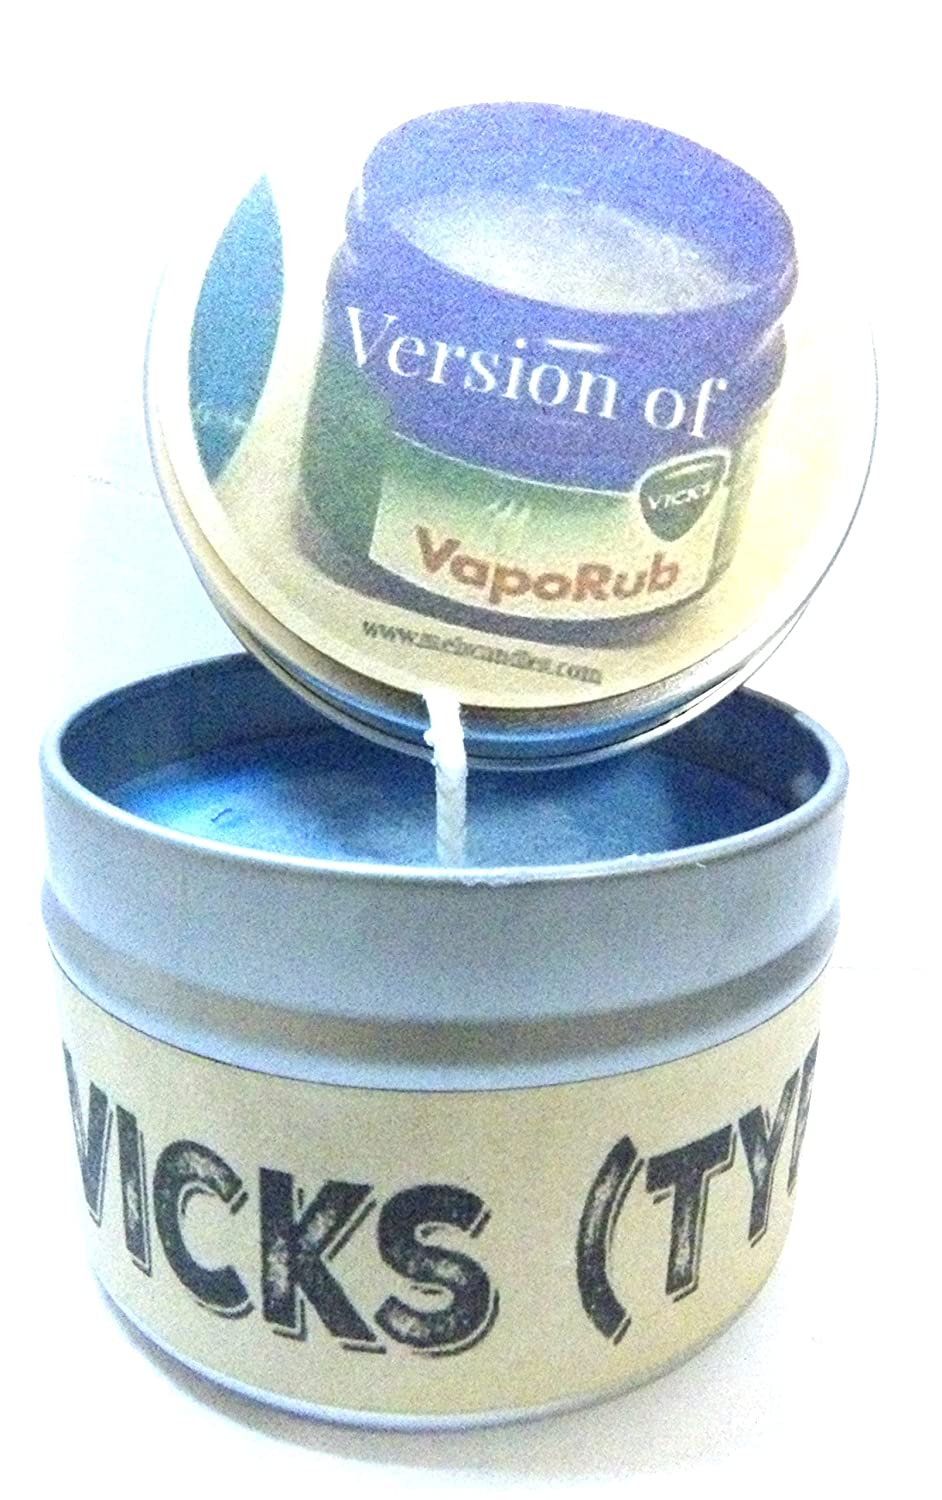 Vicks Vapor Rub (Type) 4 Oz All Natural Soy Candle Tin Approximate Burn Time 36 Hours Mels Candles & More